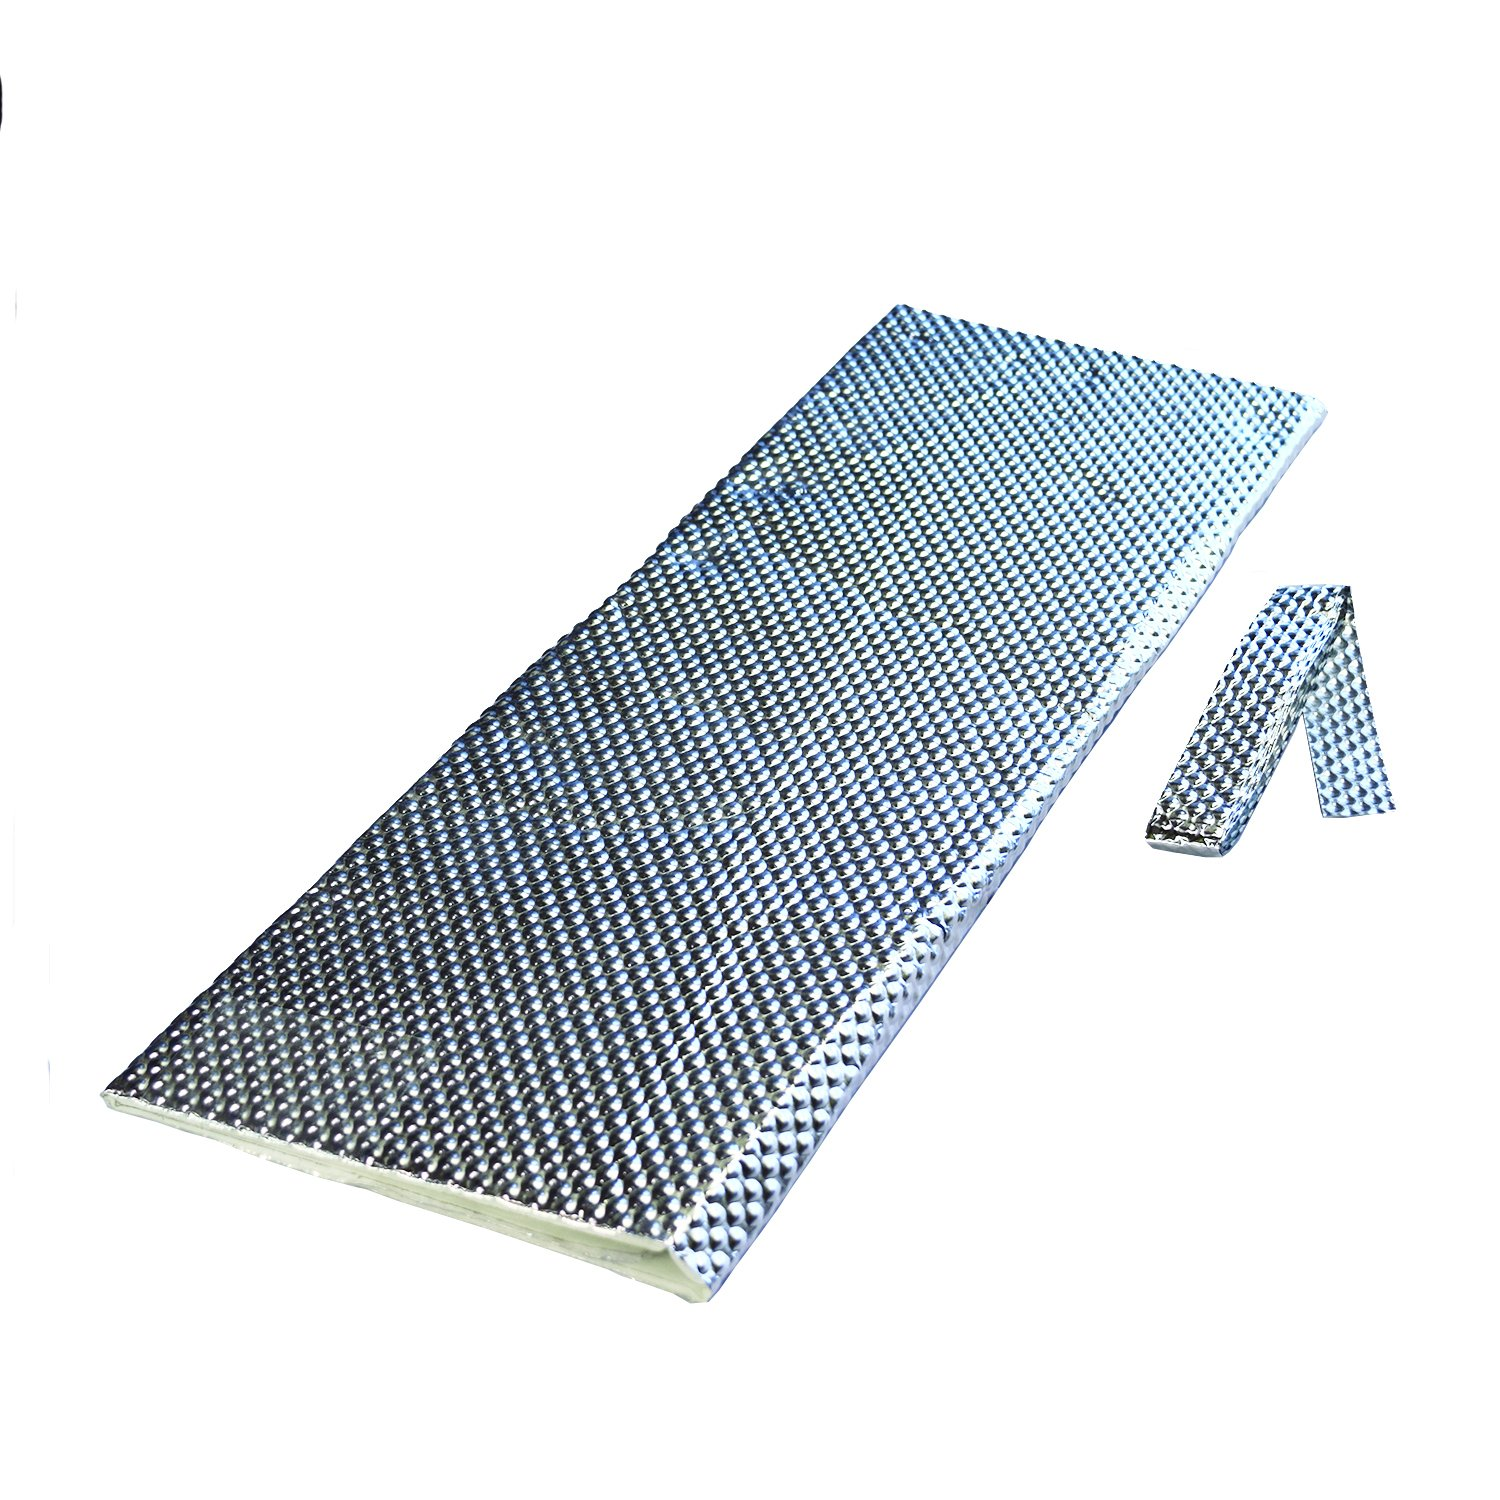 Heatshield Products 180022 1/8' Thick x 11' Wide x 10' Long HP Sticky Shield